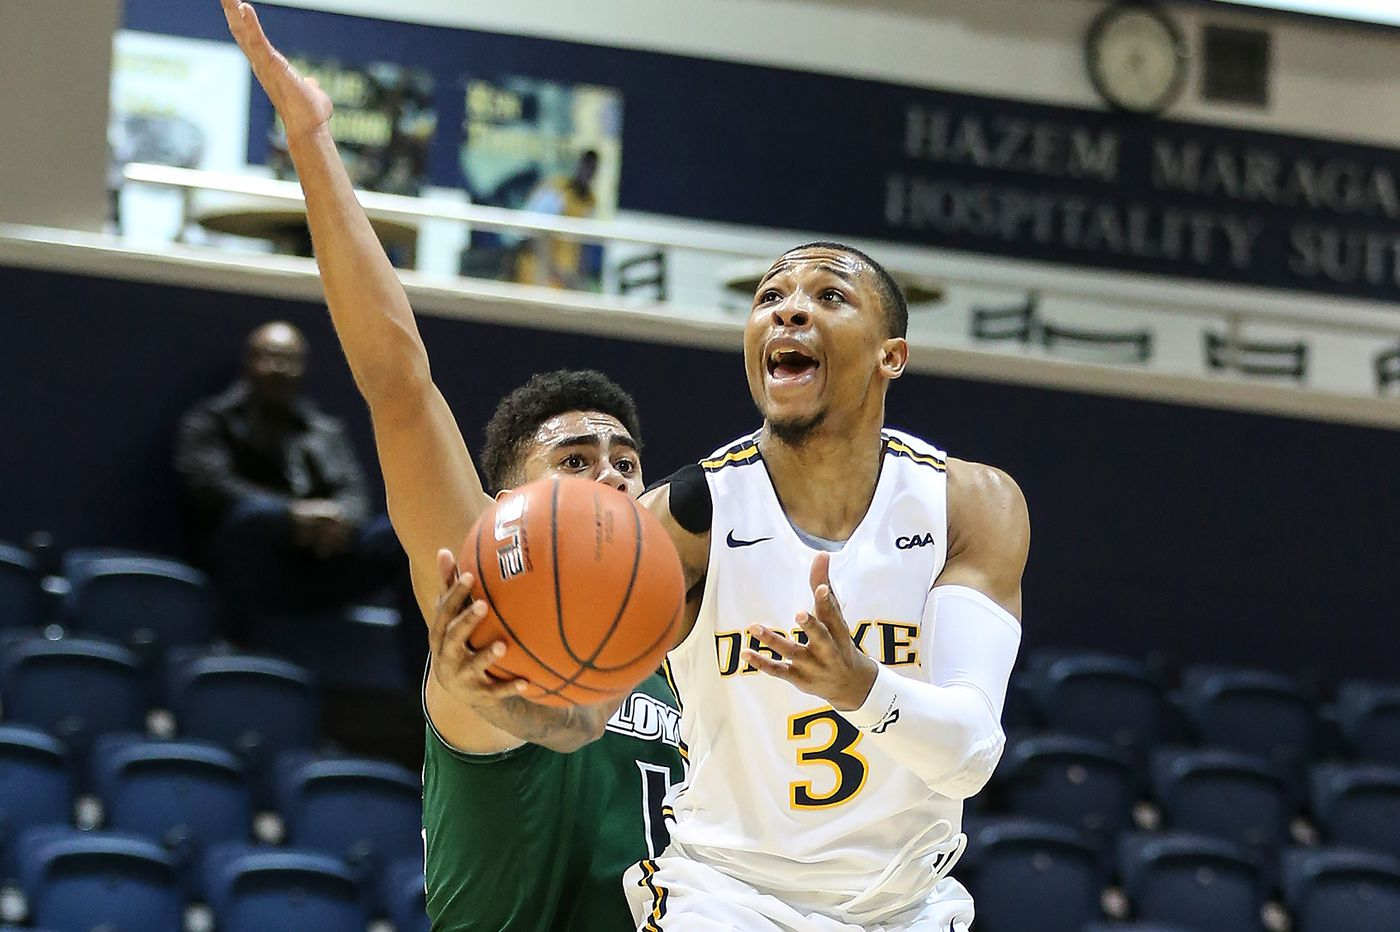 Drexel's Troy Harper coming on strong after a slow start